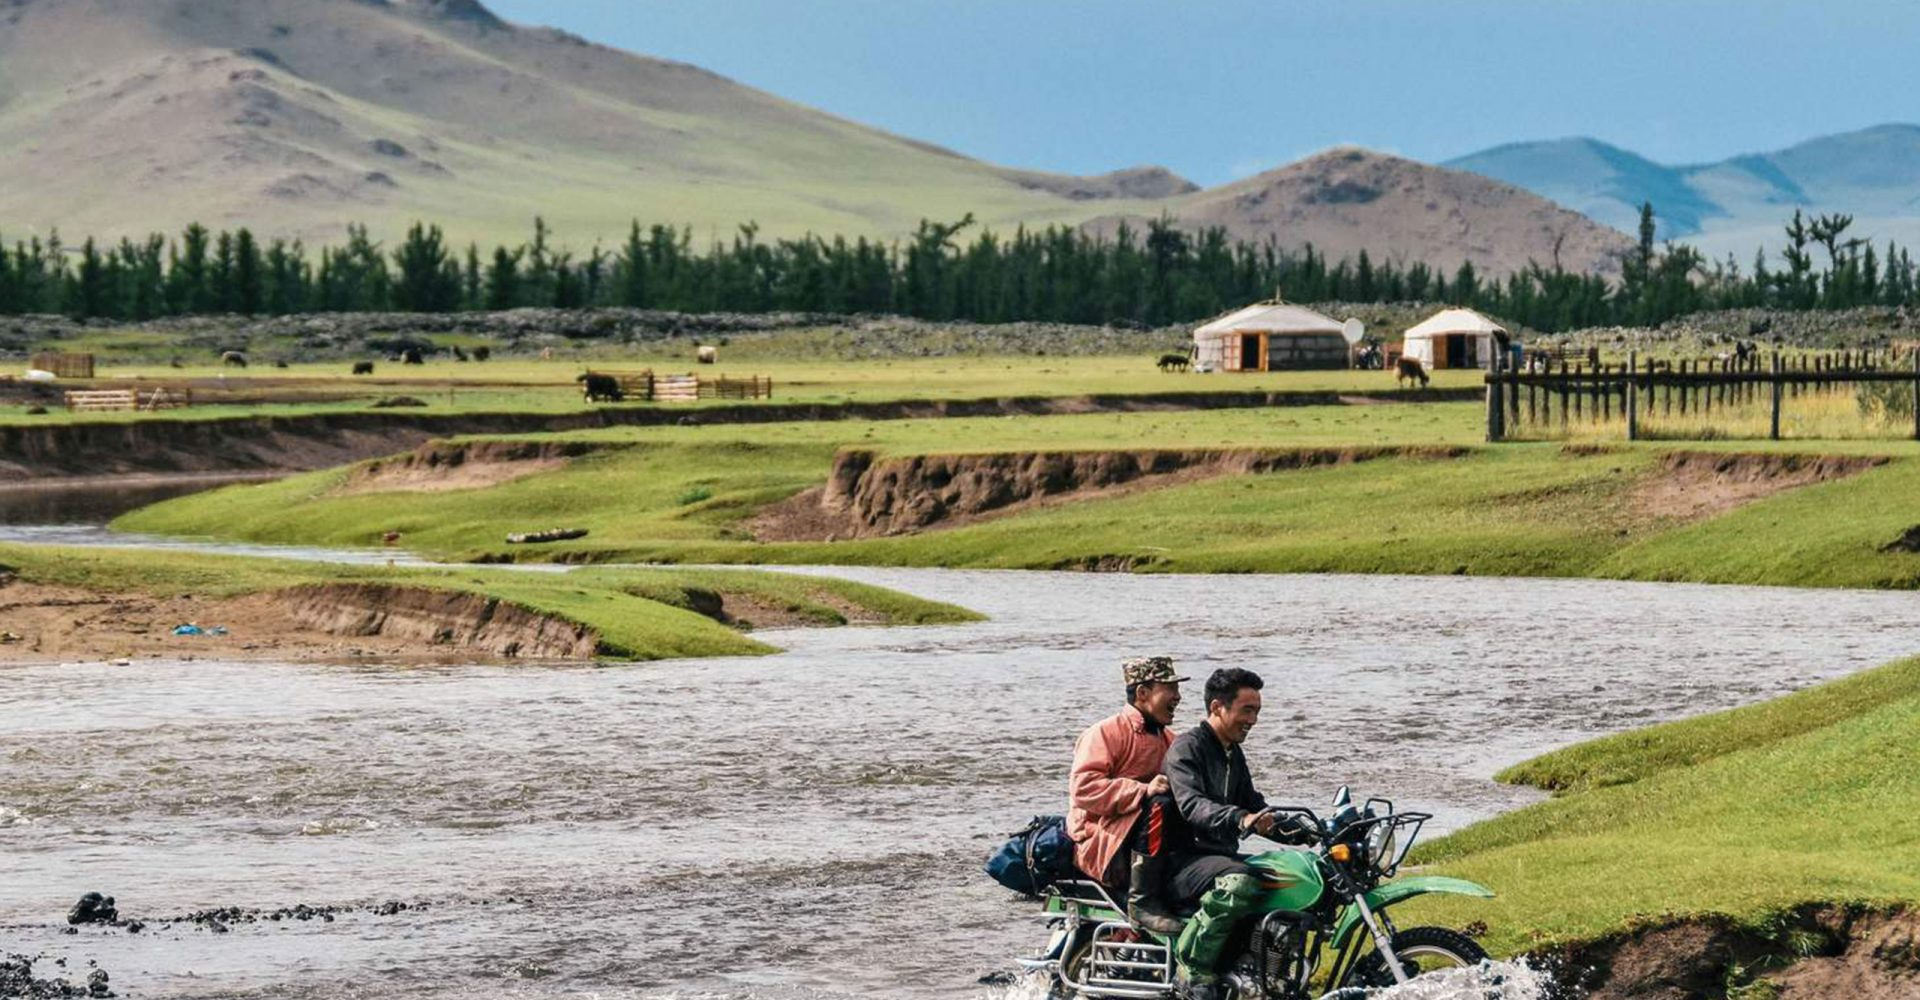 Ride on the vast Mongolian Steppe and try the real nomadic lifestyle of the locals. Sleep in yurts, dine in the open air and ride into serenity. Simply the best off-road experience.